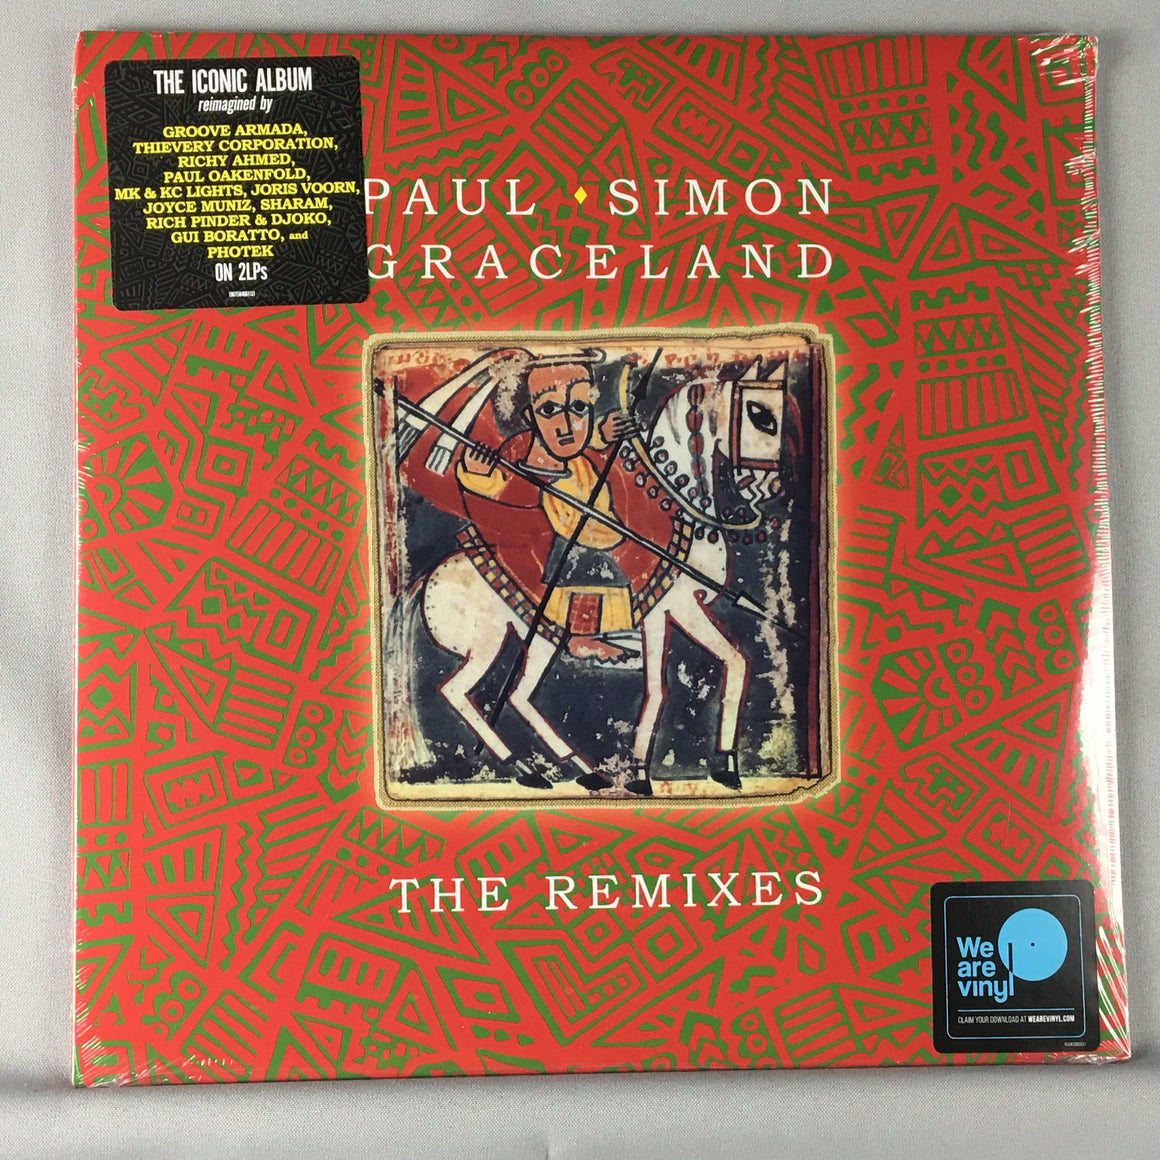 Paul Simon ‎– Graceland (The Remixes) New Sealed LP 19075846611